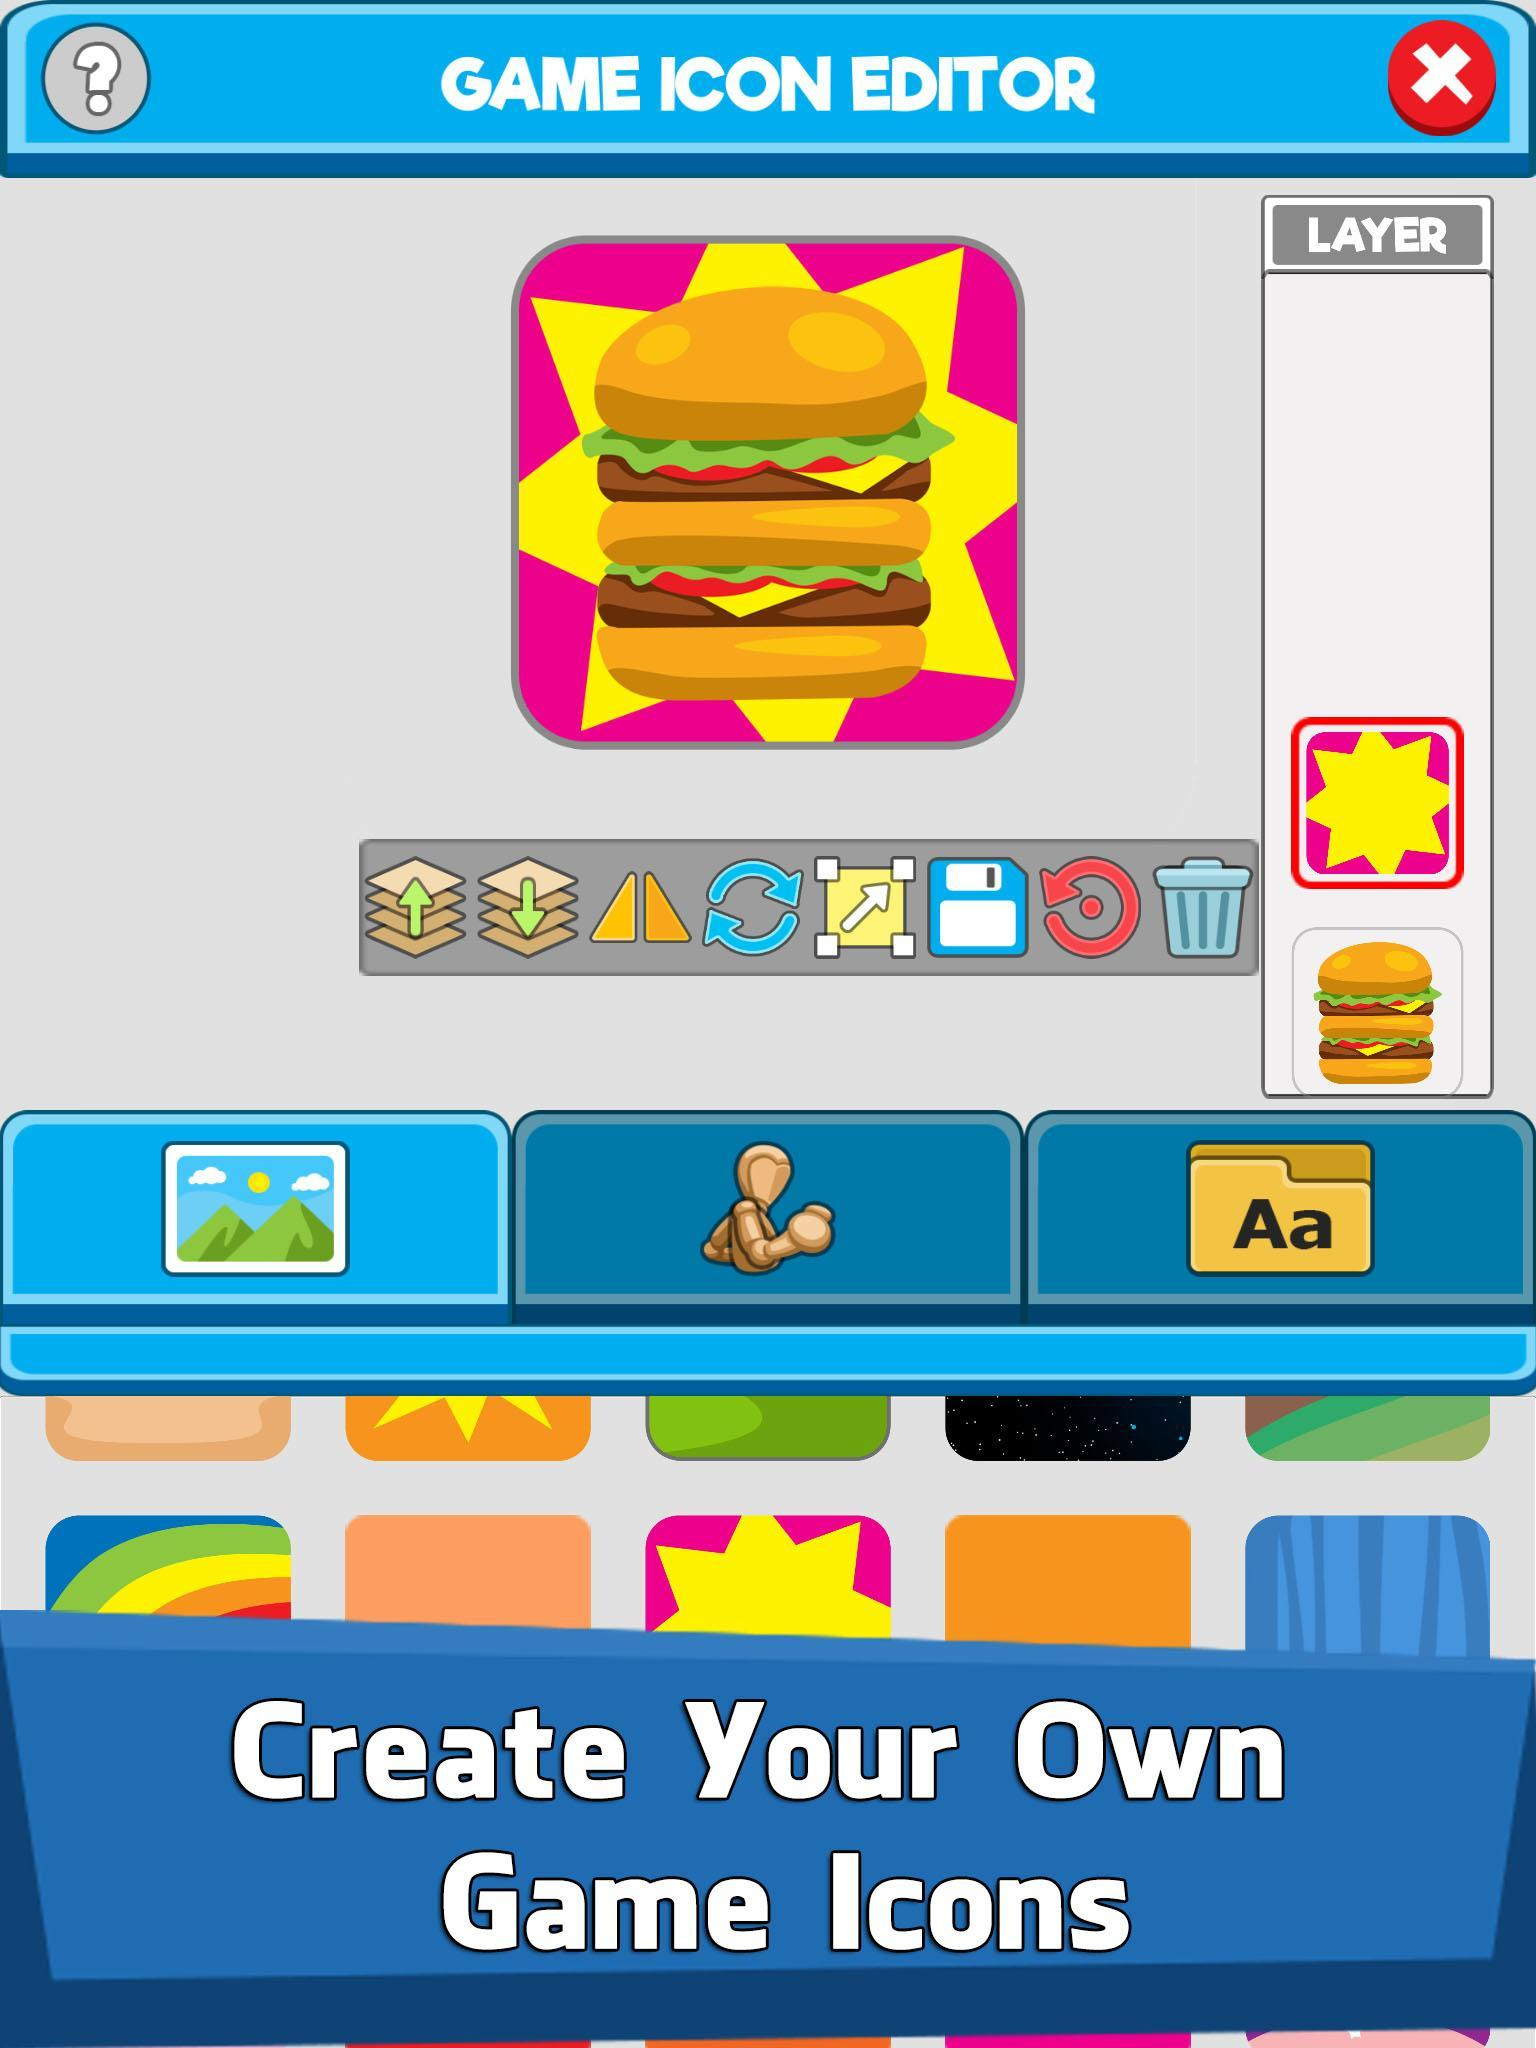 Video Game Tycoon for Android - APK Download